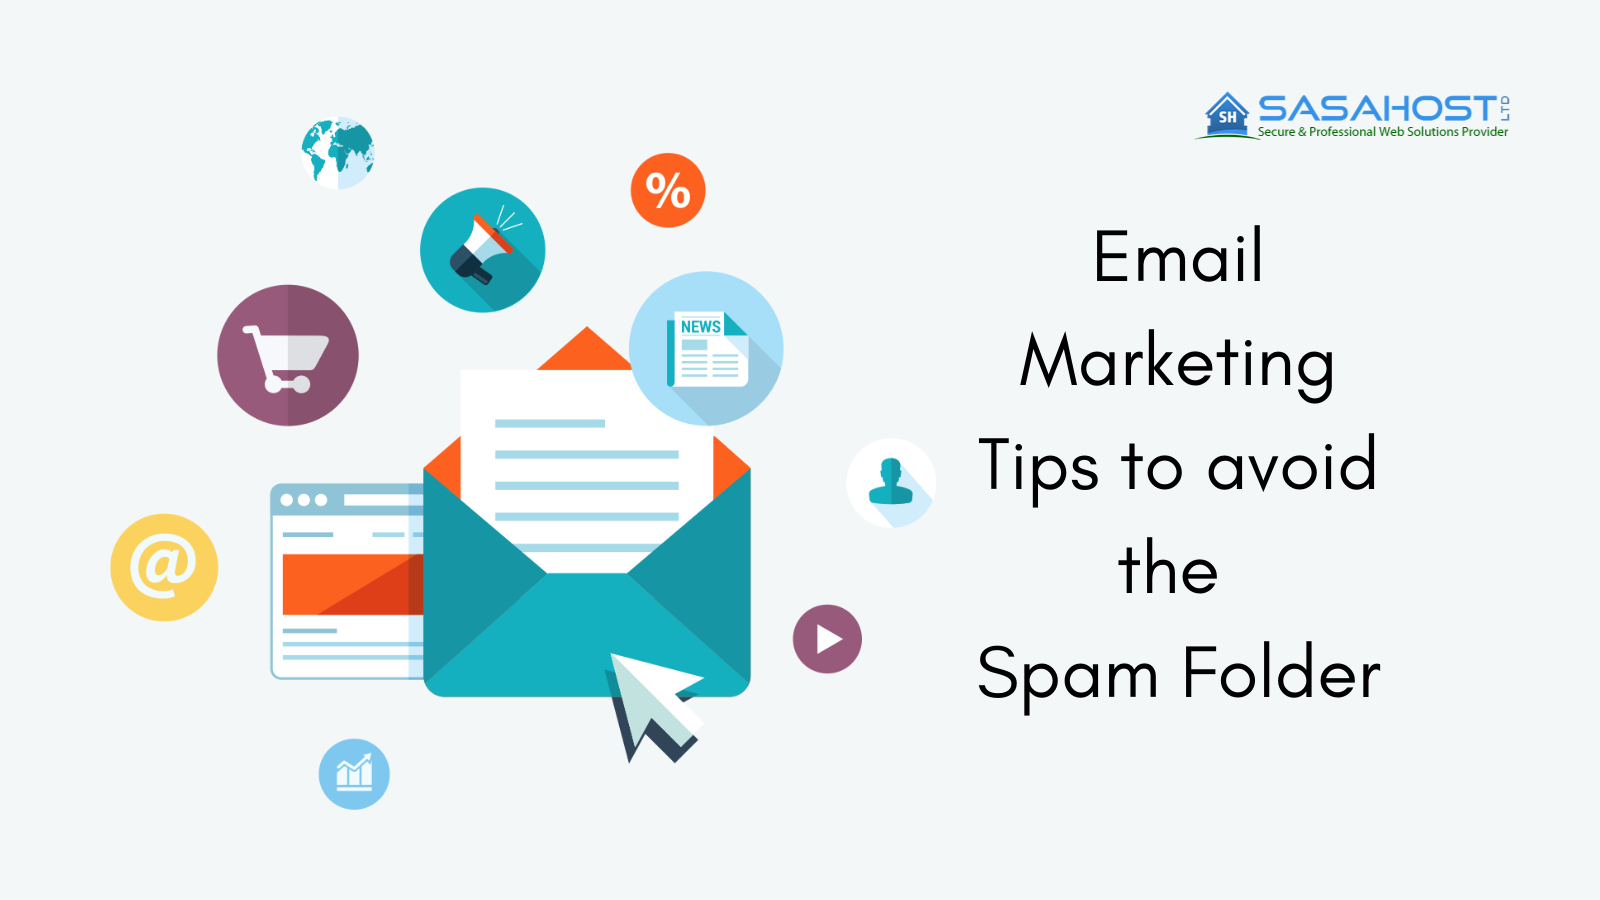 email marketing tips to avoid the spam folder